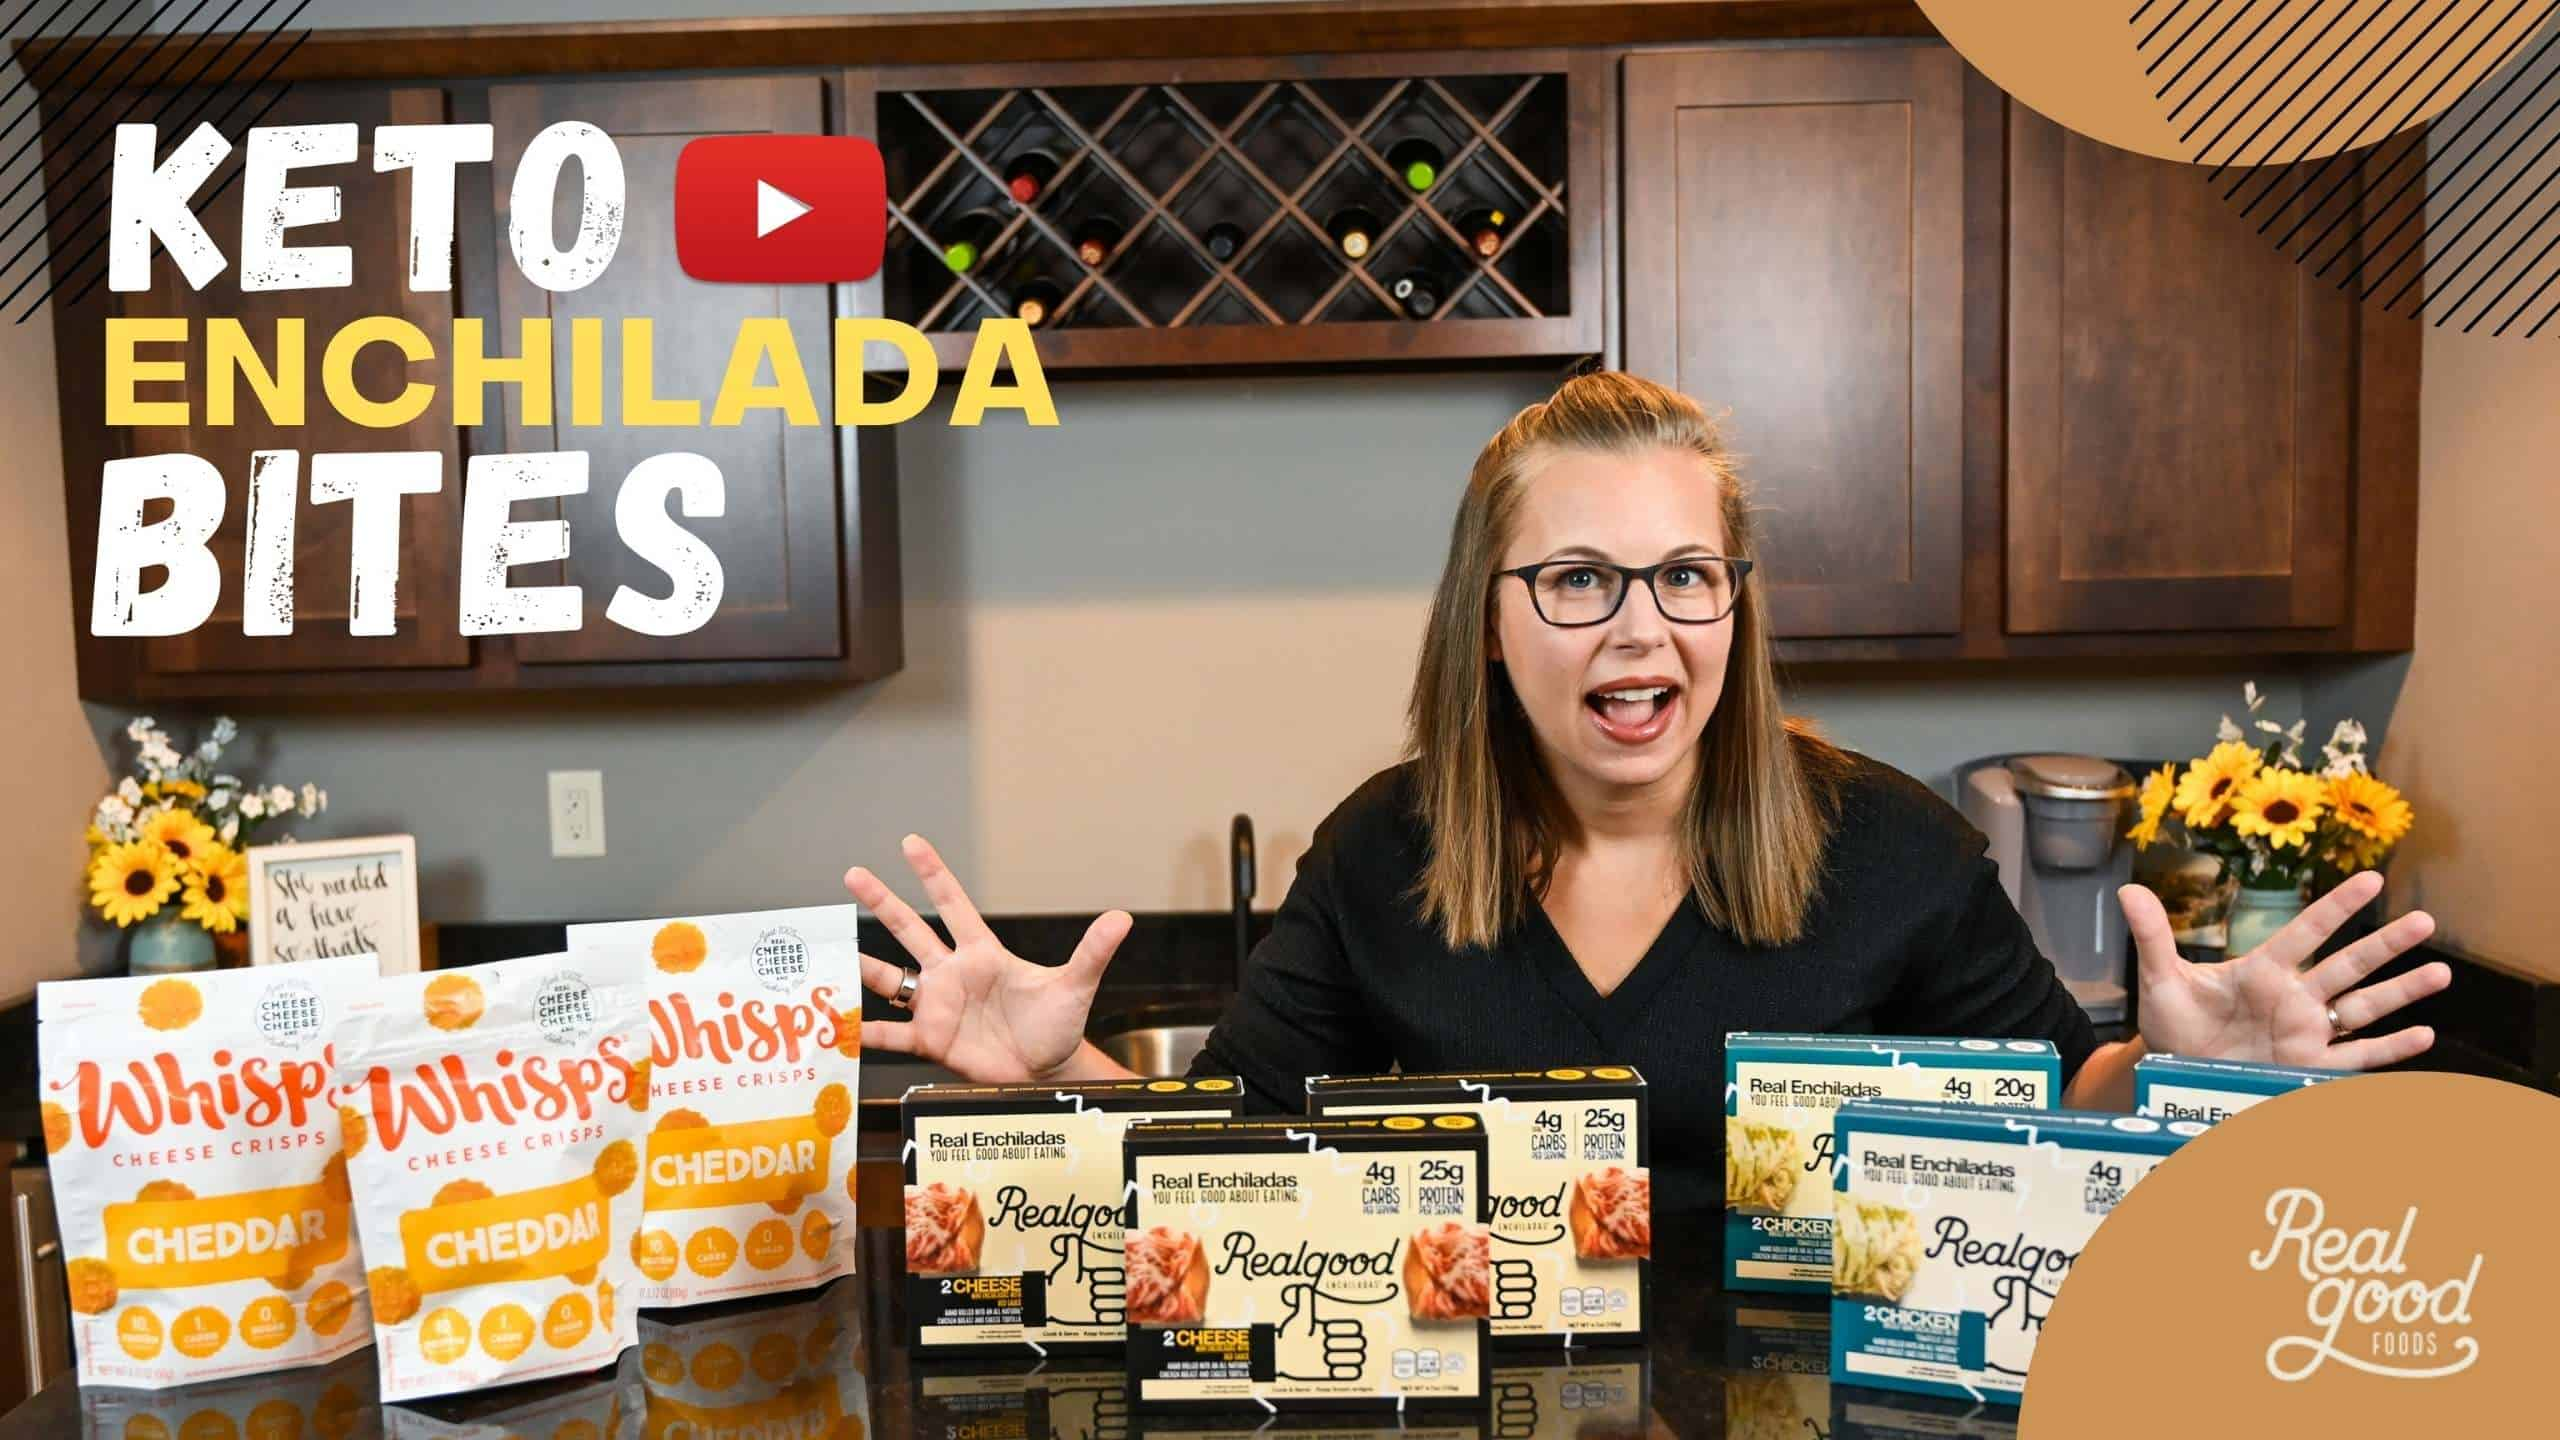 Real-Good-Foods-Enchilada-Review-and-Keto-Enchilada-Bites-Recipe